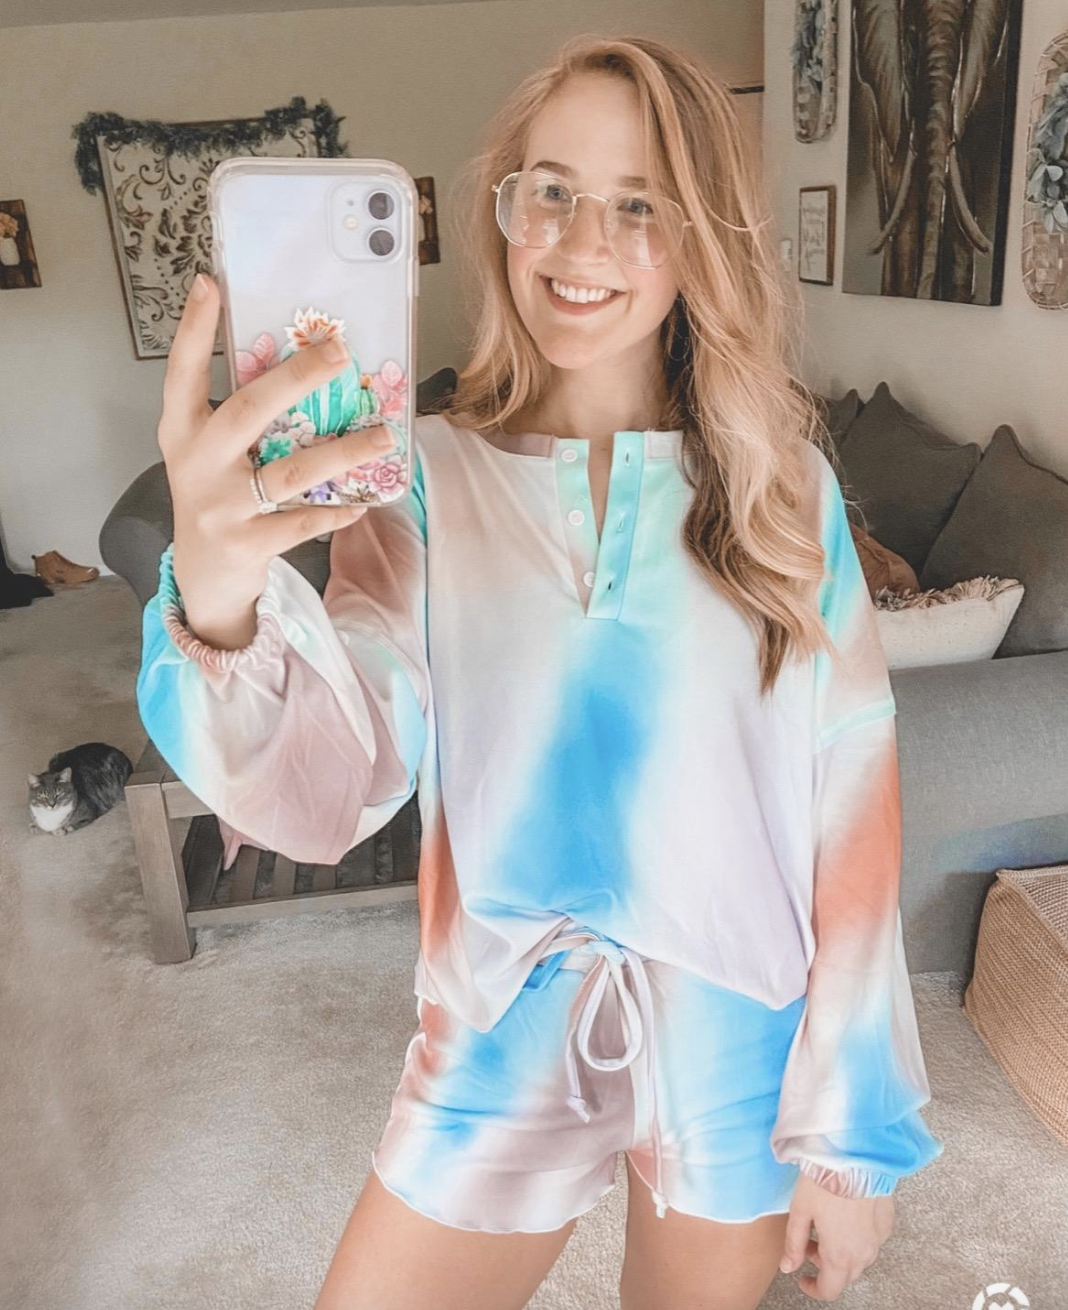 reviewer wearing drawstring shorts and V-neck sleeved top in tie dye pattern with pink, blue, and orange